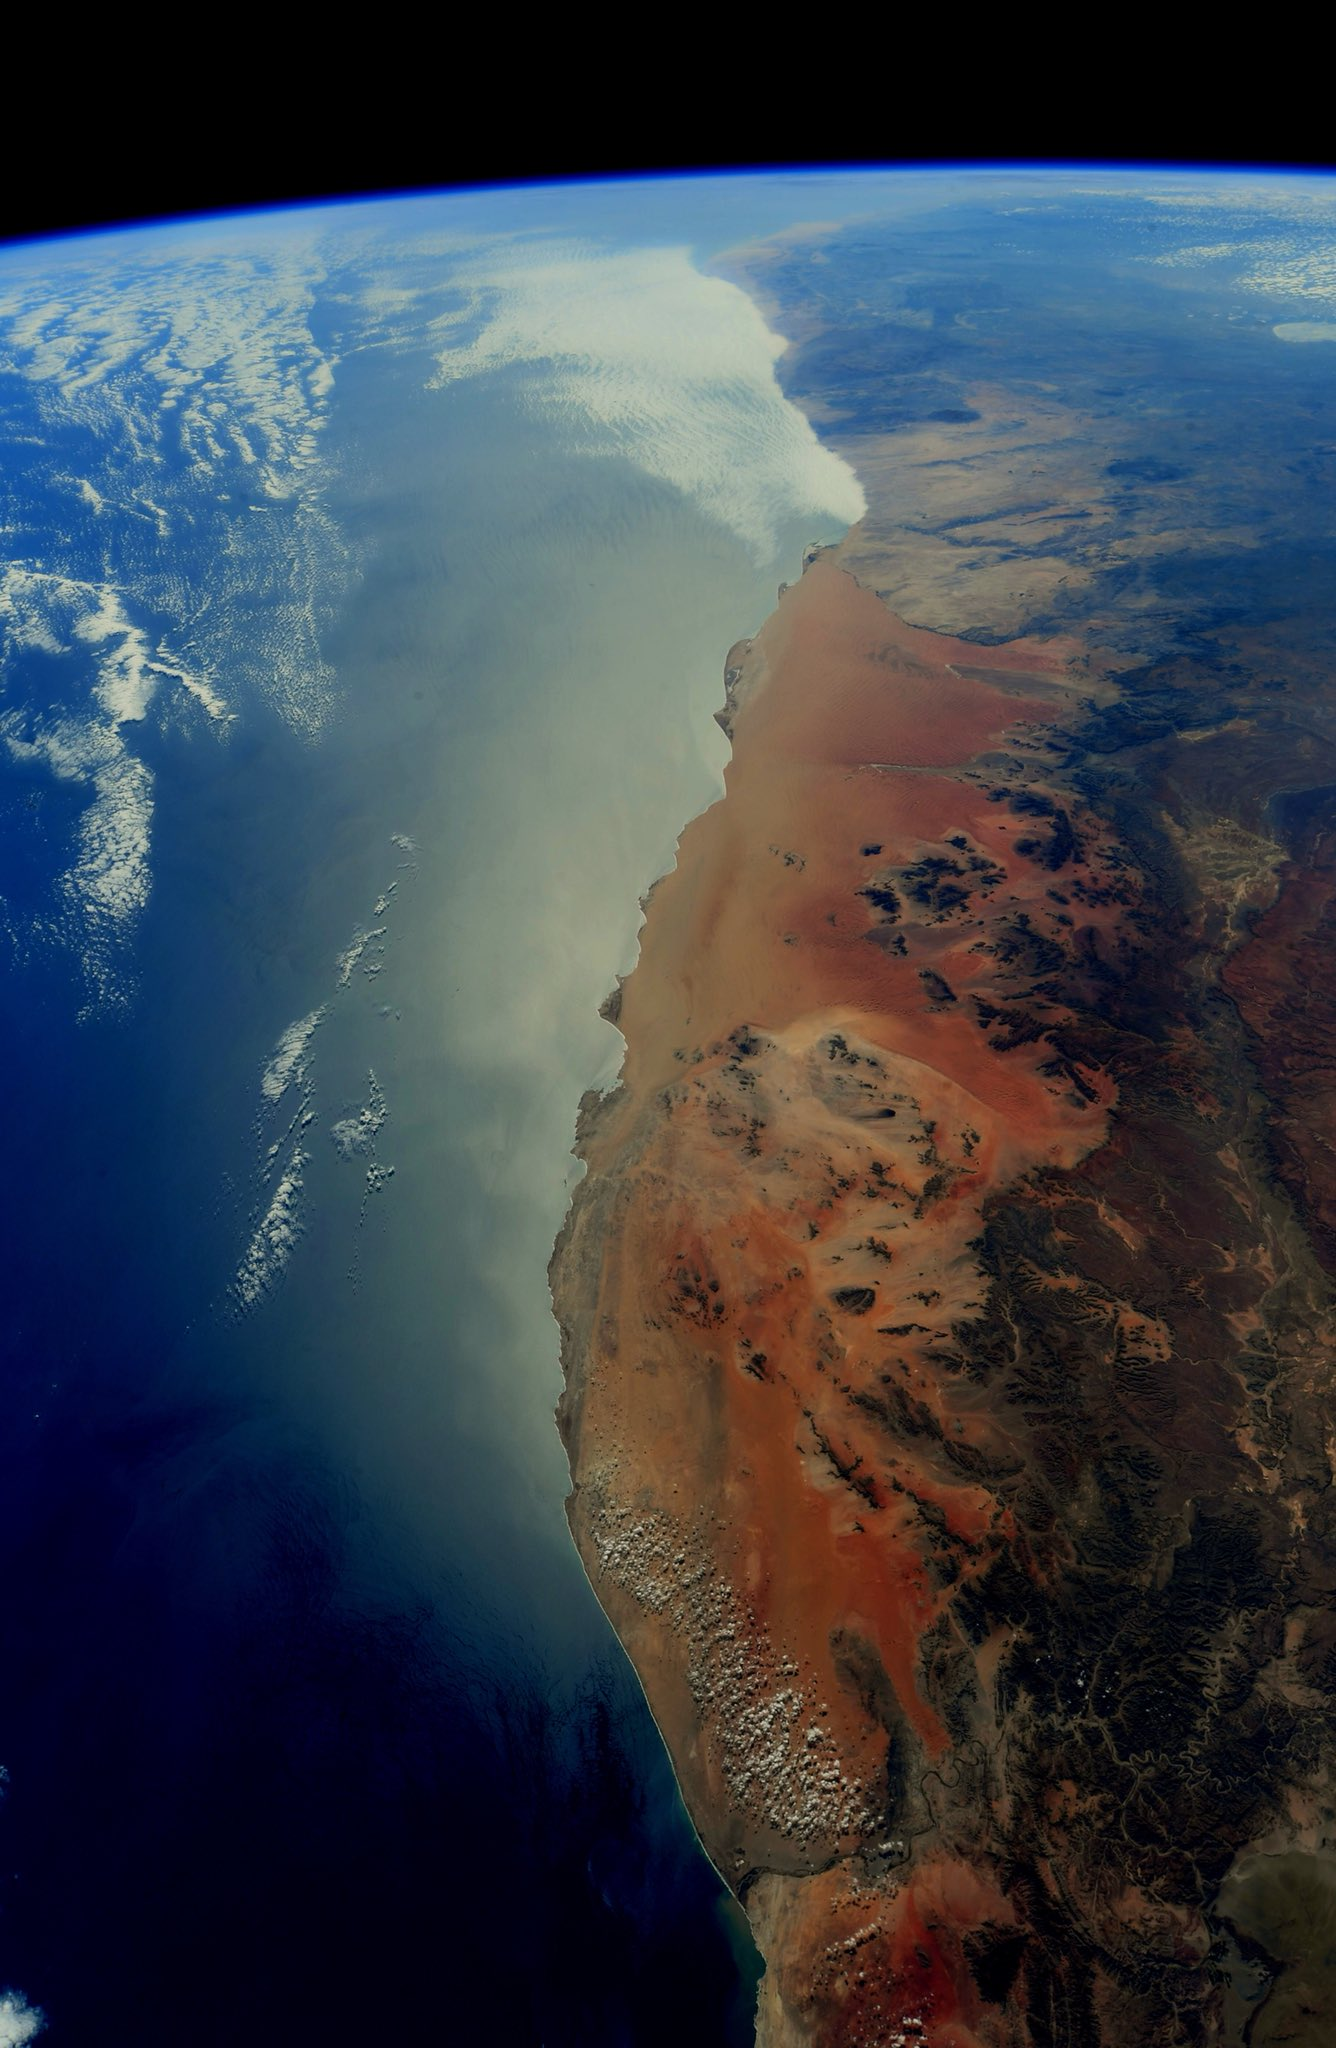 The ethereal beauty of Earth is our constant companion. It reminds us of all that we have left behind and what awaits when we return. The Skeleton Coast of the Namib Desert. #Namibia (Photo & Caption: Ricky Arnold / NASA)